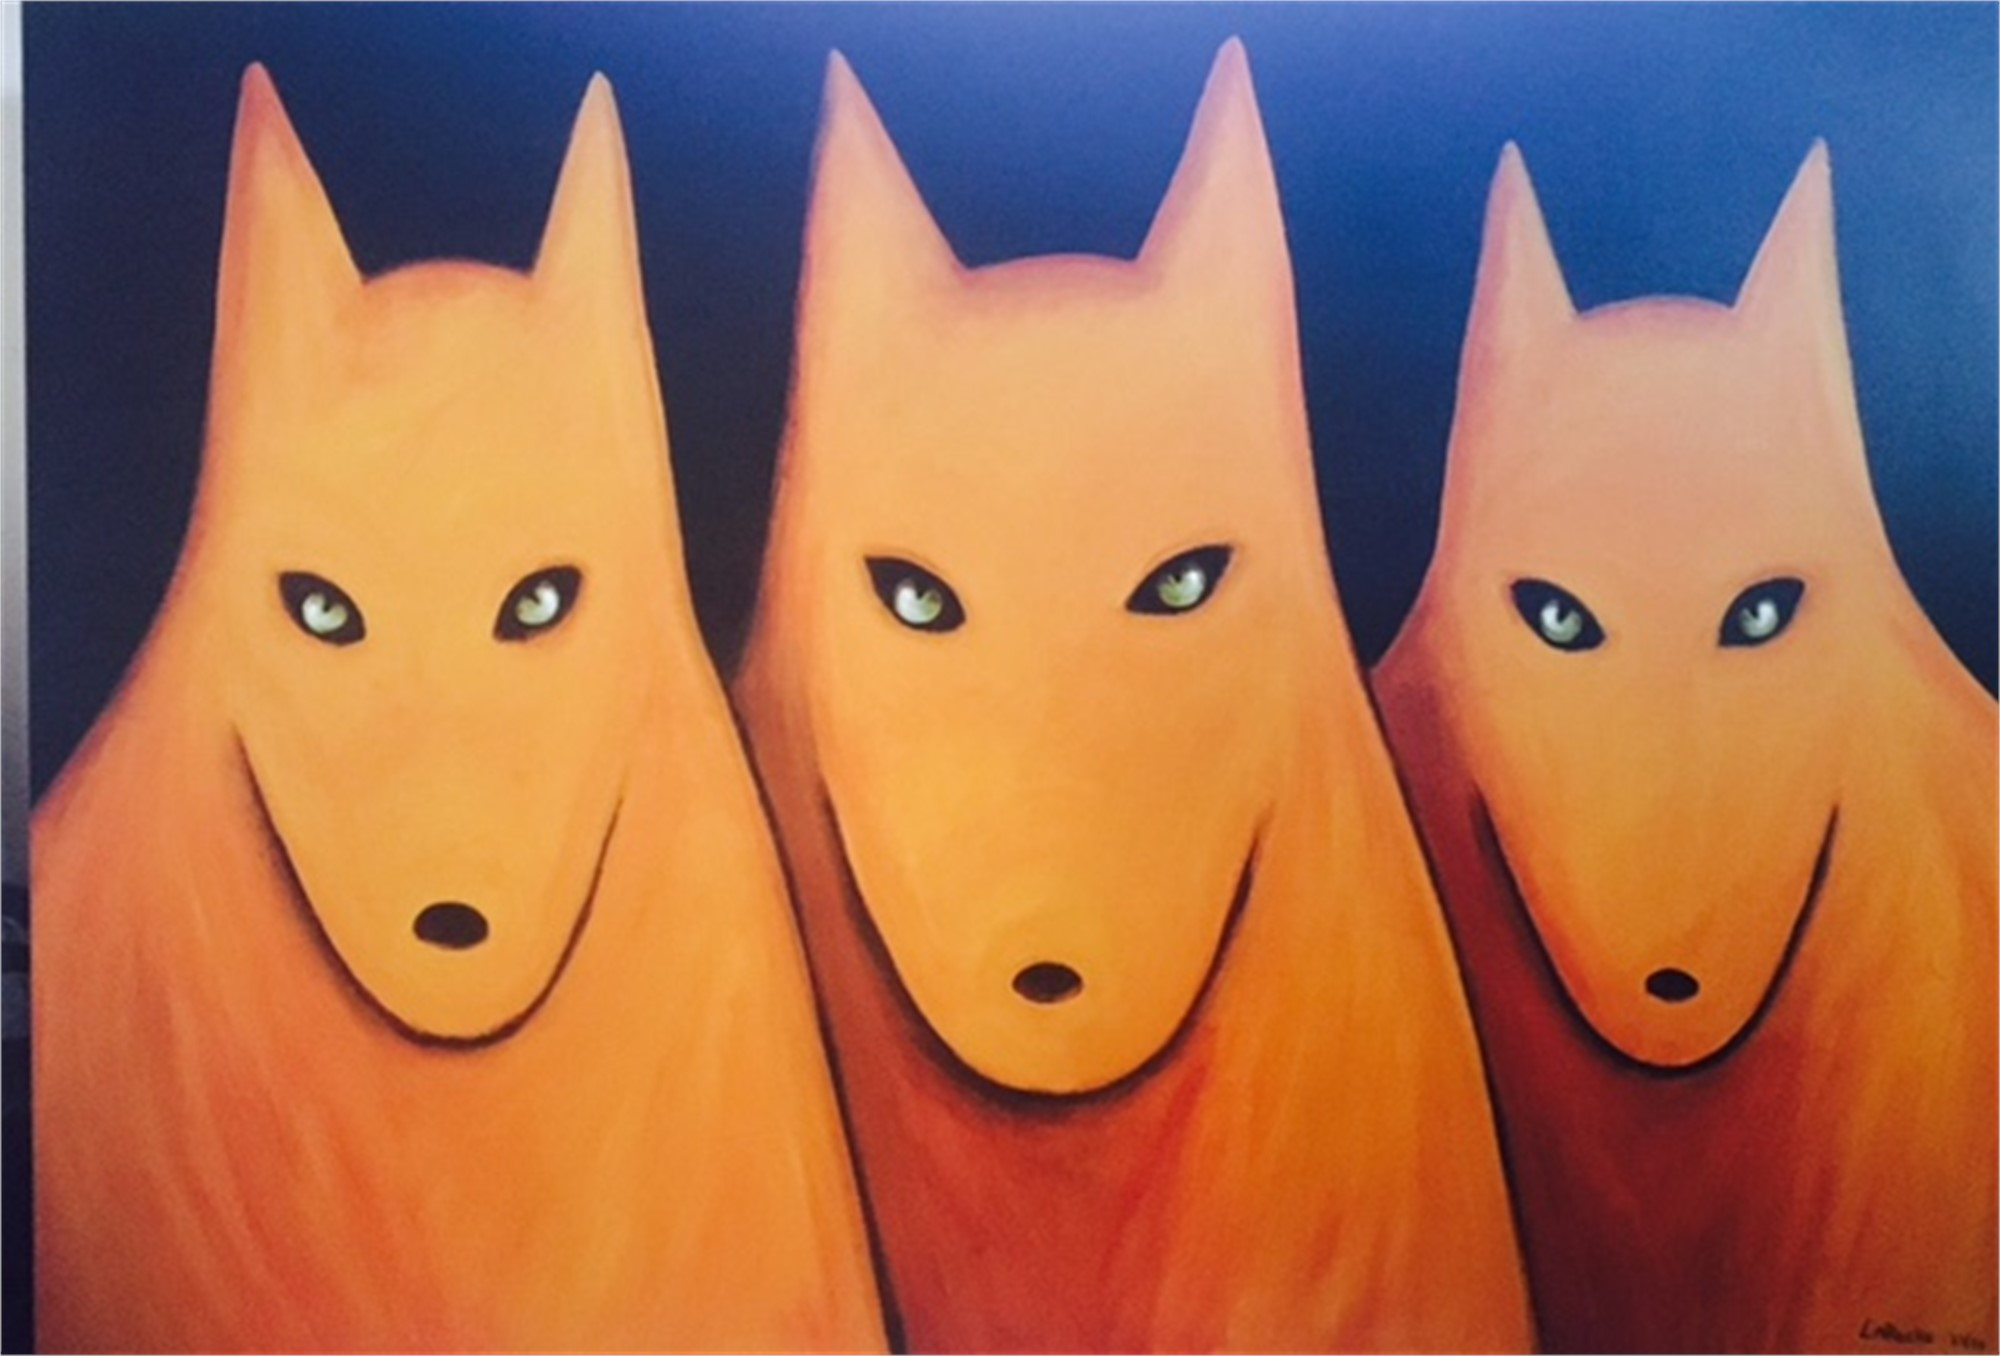 "NIGHT SKY/THREE GOLDEN WOLVES - limited edition giclee on canvas: (large) 40""x60"" $3500 or (medium) 30""x40"" $2200 by Carole LaRoche"